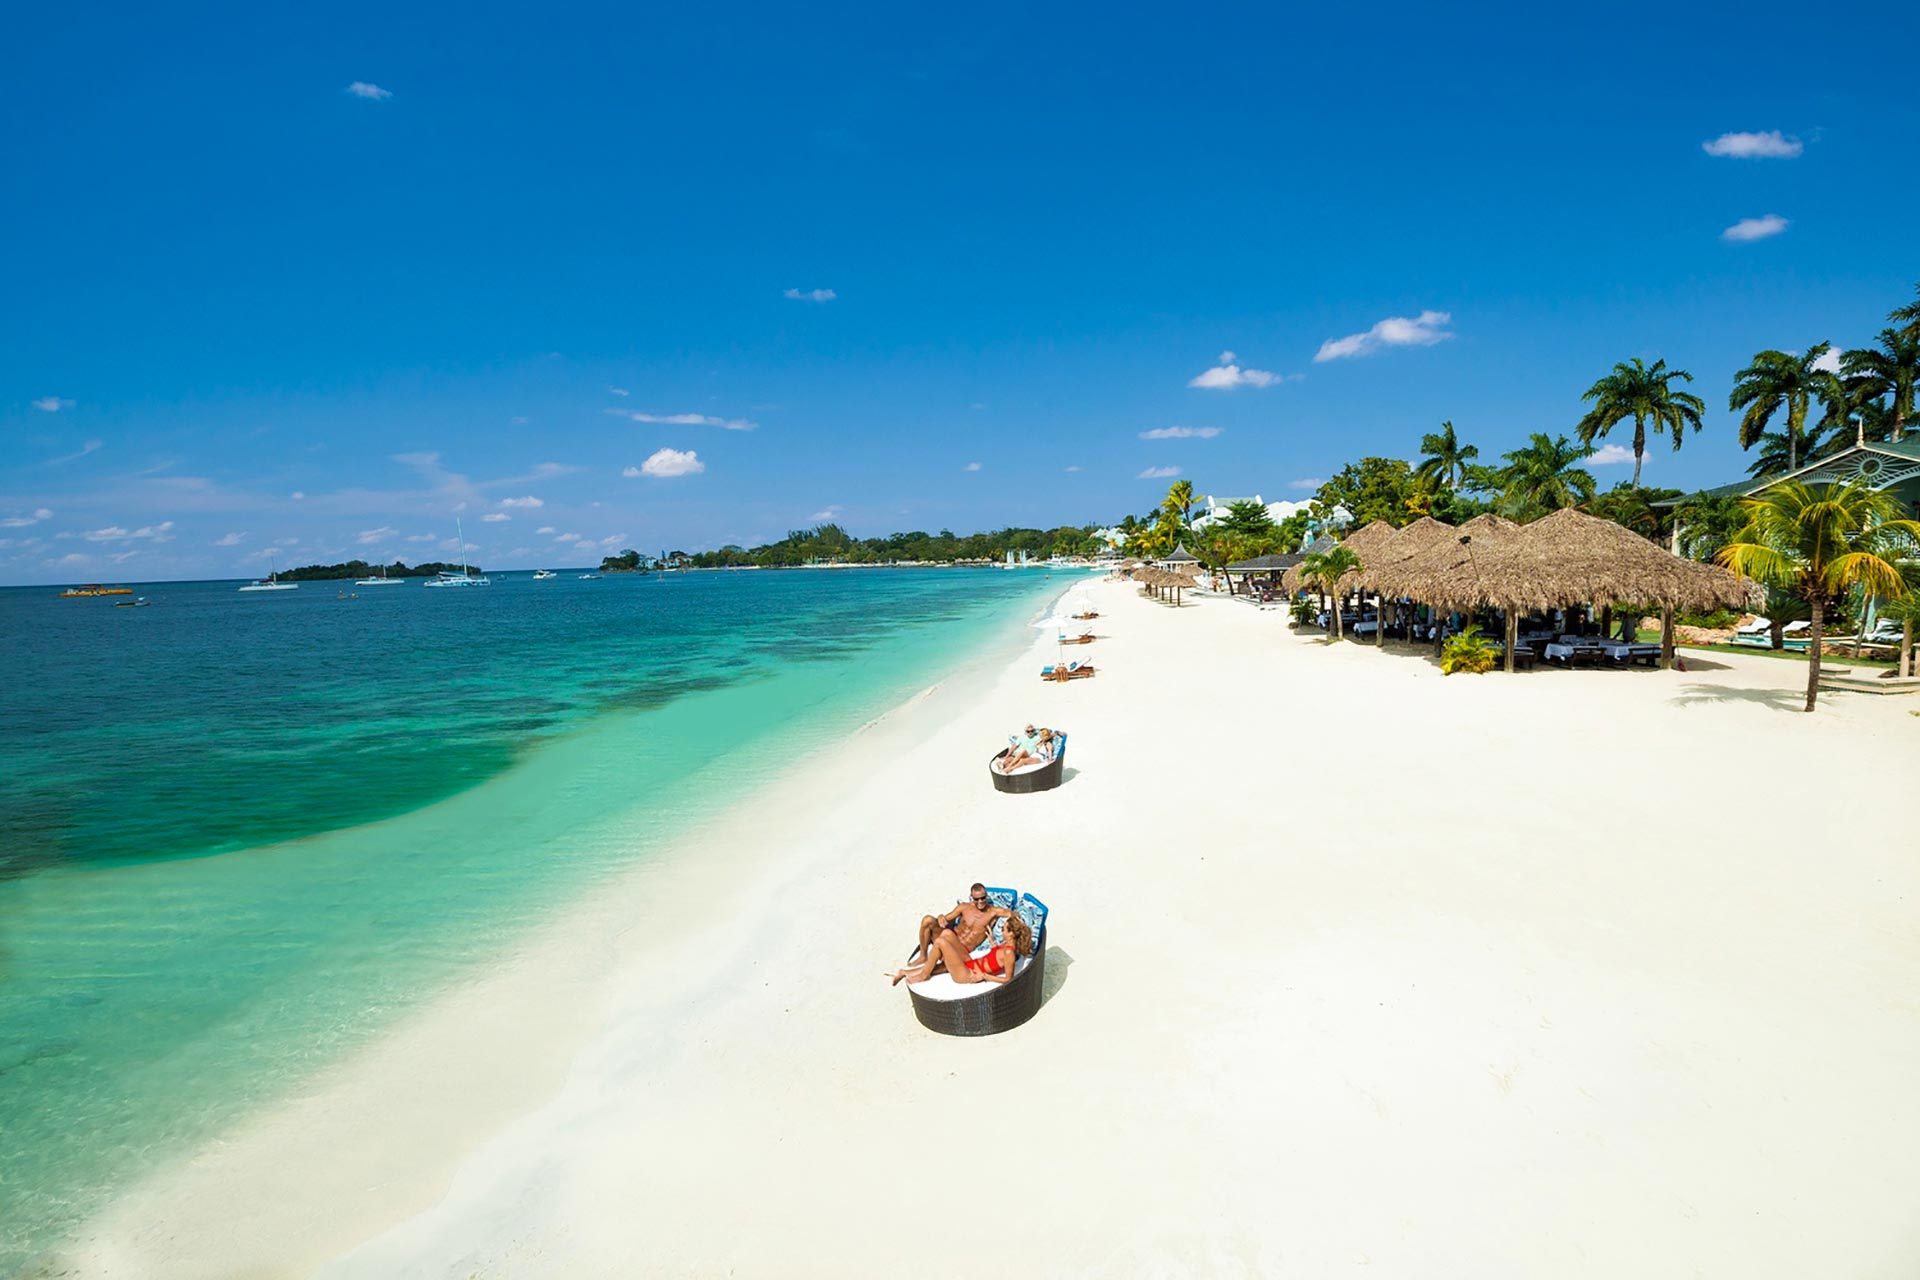 Sandals all-inclusive resort in Negril